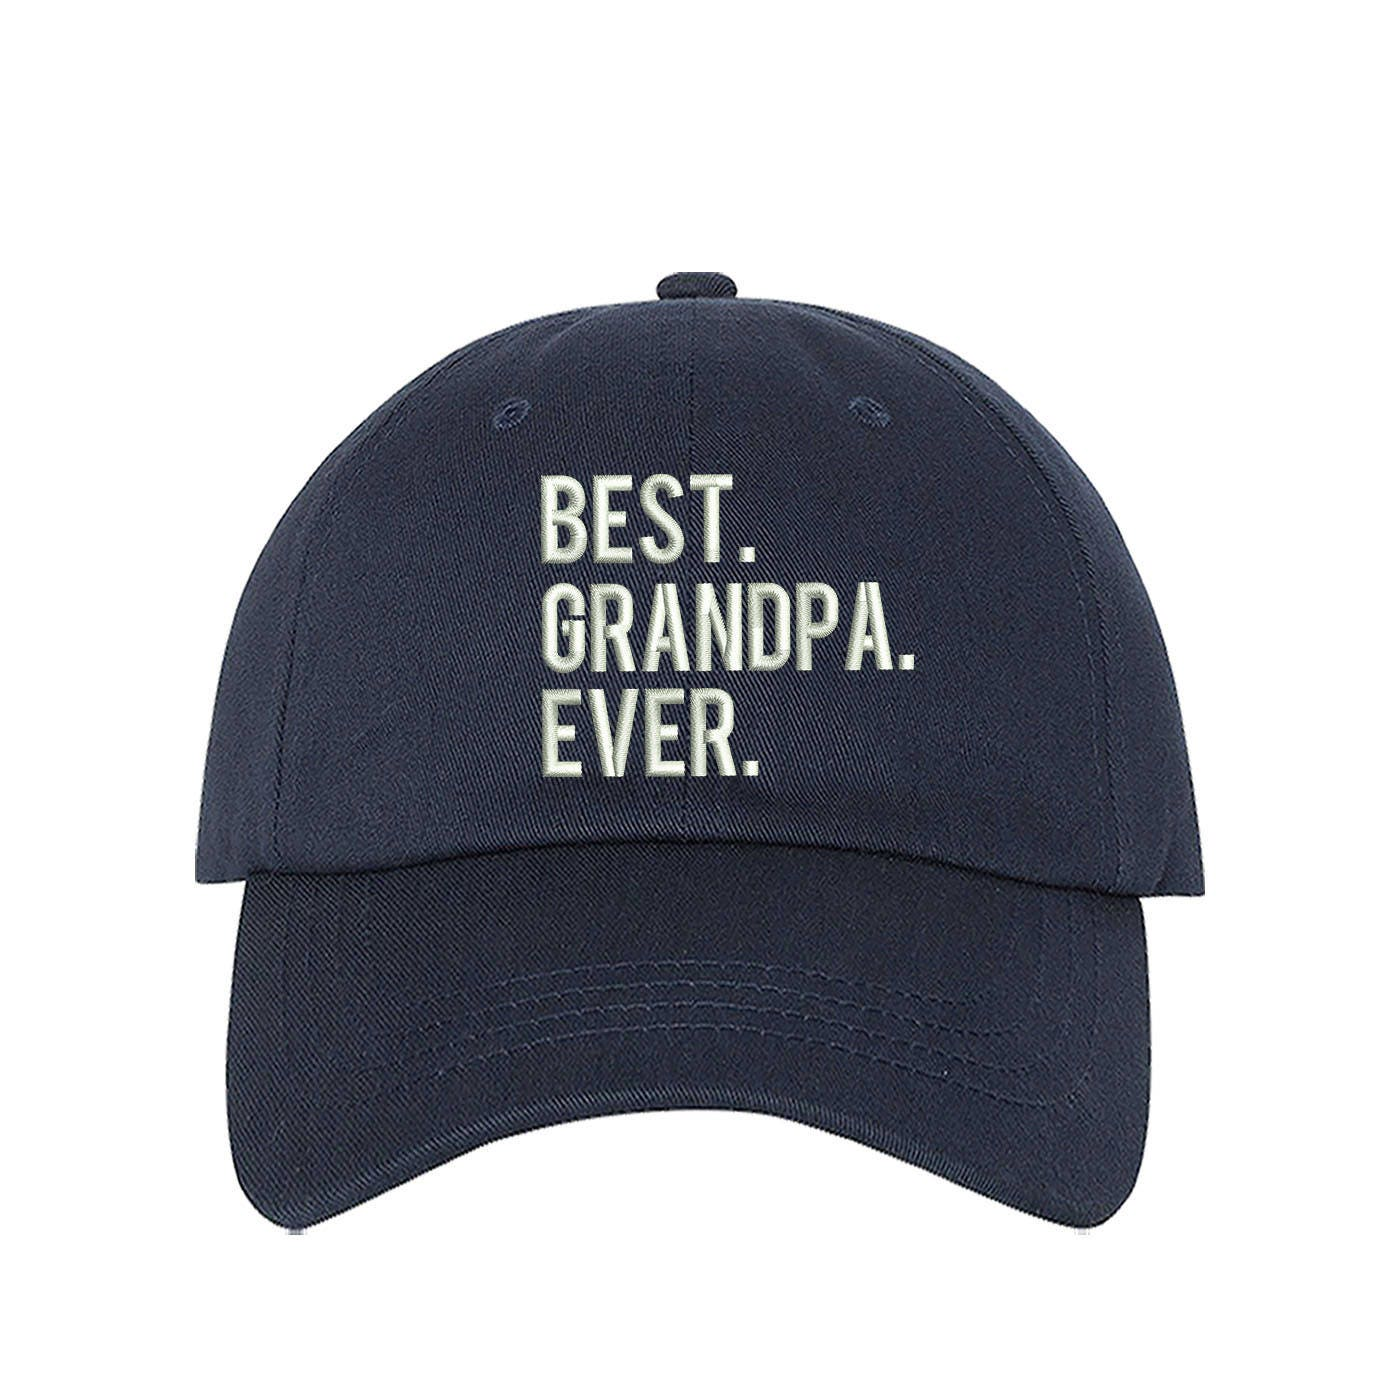 fcdd4b01c34 ... Dad Hat I Love My Grandfather Papa Gift Best Ever Hat Best Abuelo Ever  Hat Grandparents Hat Grandpa Gift Baseball Cap Hats. gallery photo ...